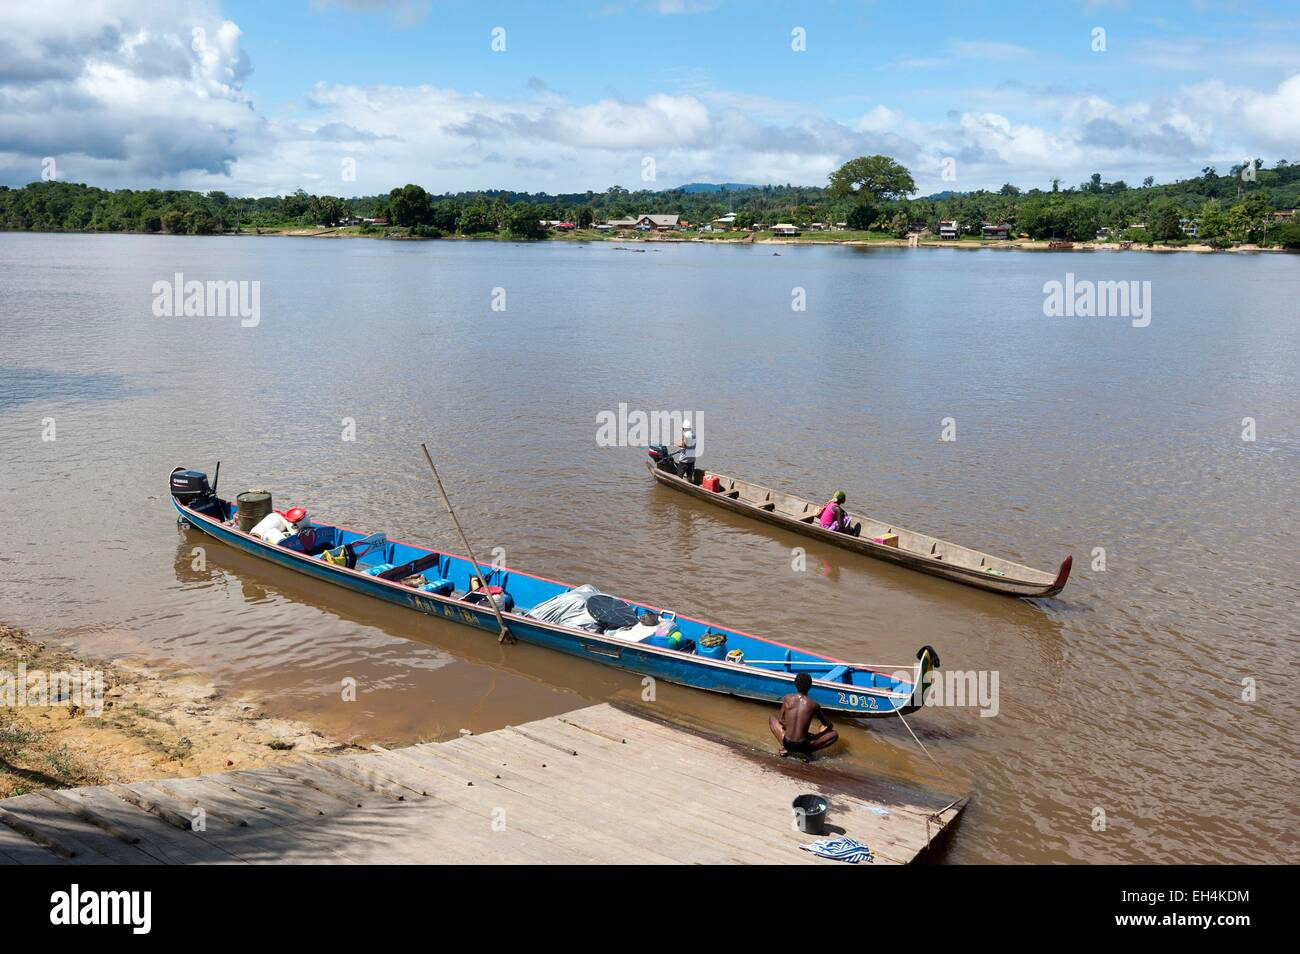 Republic of Suriname, two pirogues on the Lawa River becoming downstream the Maroni river, on the opposite bank - Stock Image